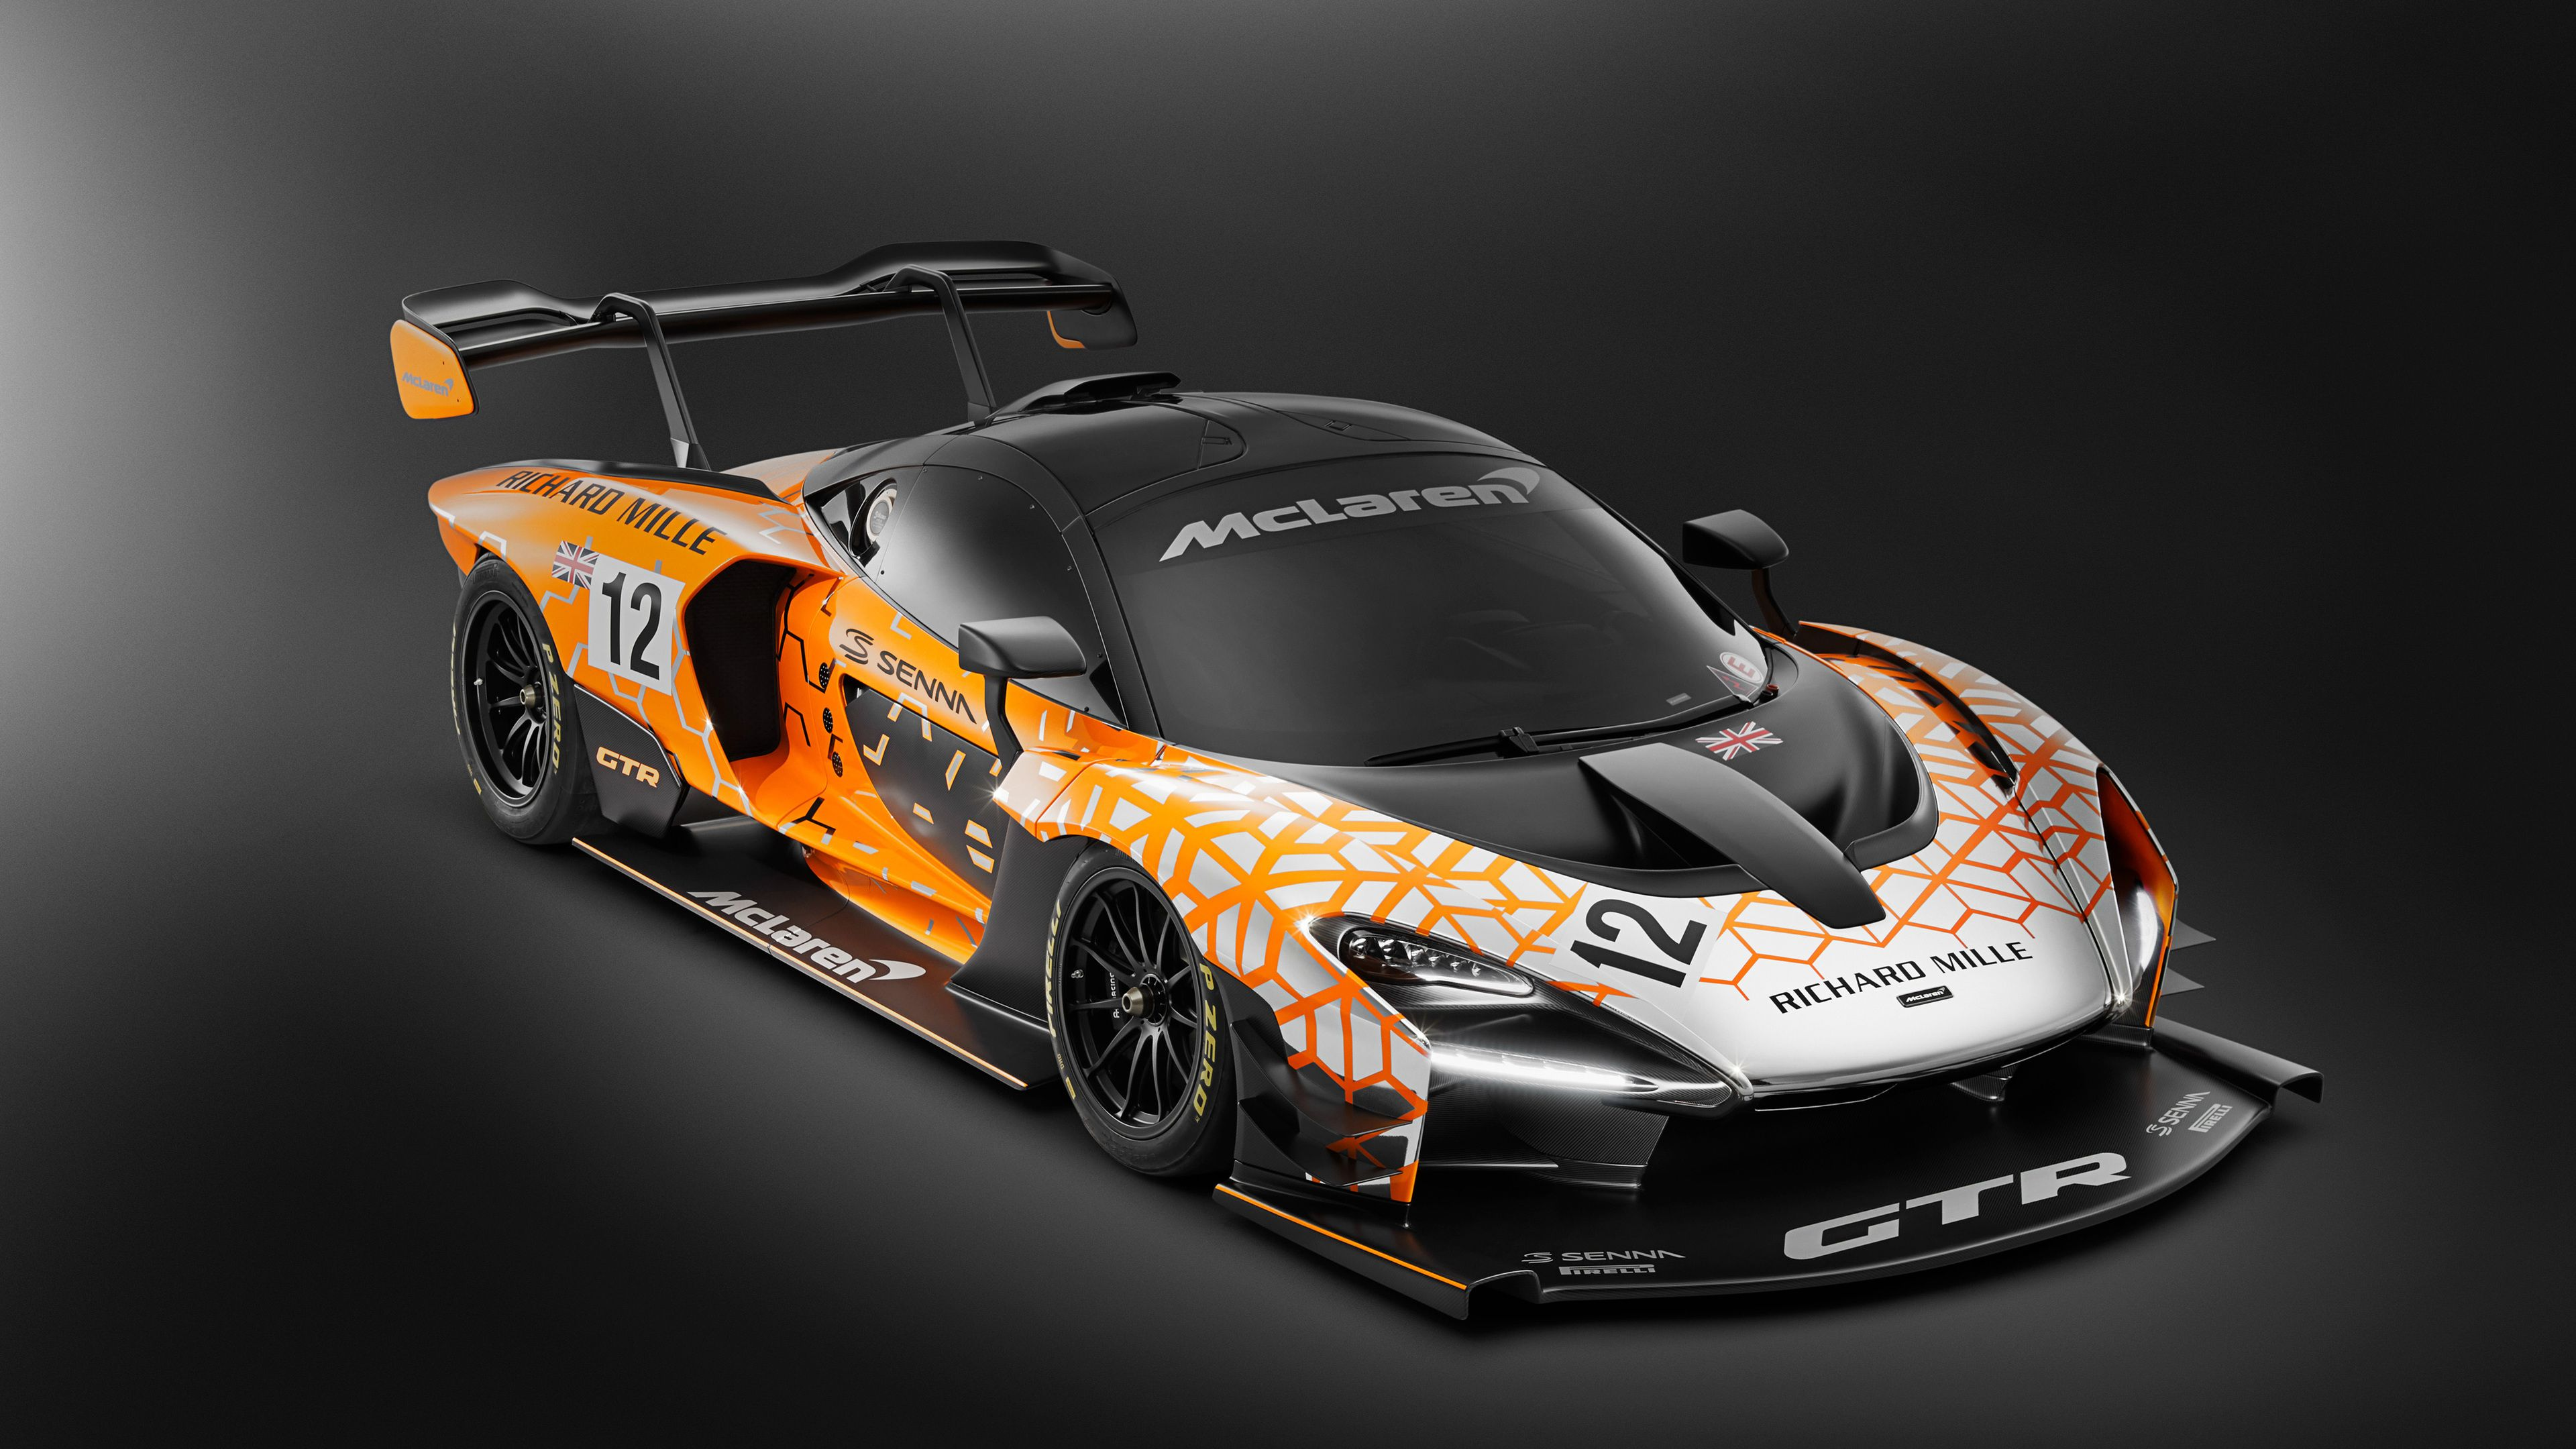 Mclaren Senna Gtr Concept 4k Mclaren Wallpapers Mclaren Senna Wallpapers Hd Wallpapers Concept Cars Wallpapers Cars W Super Cars Mclaren Sports Cars Luxury